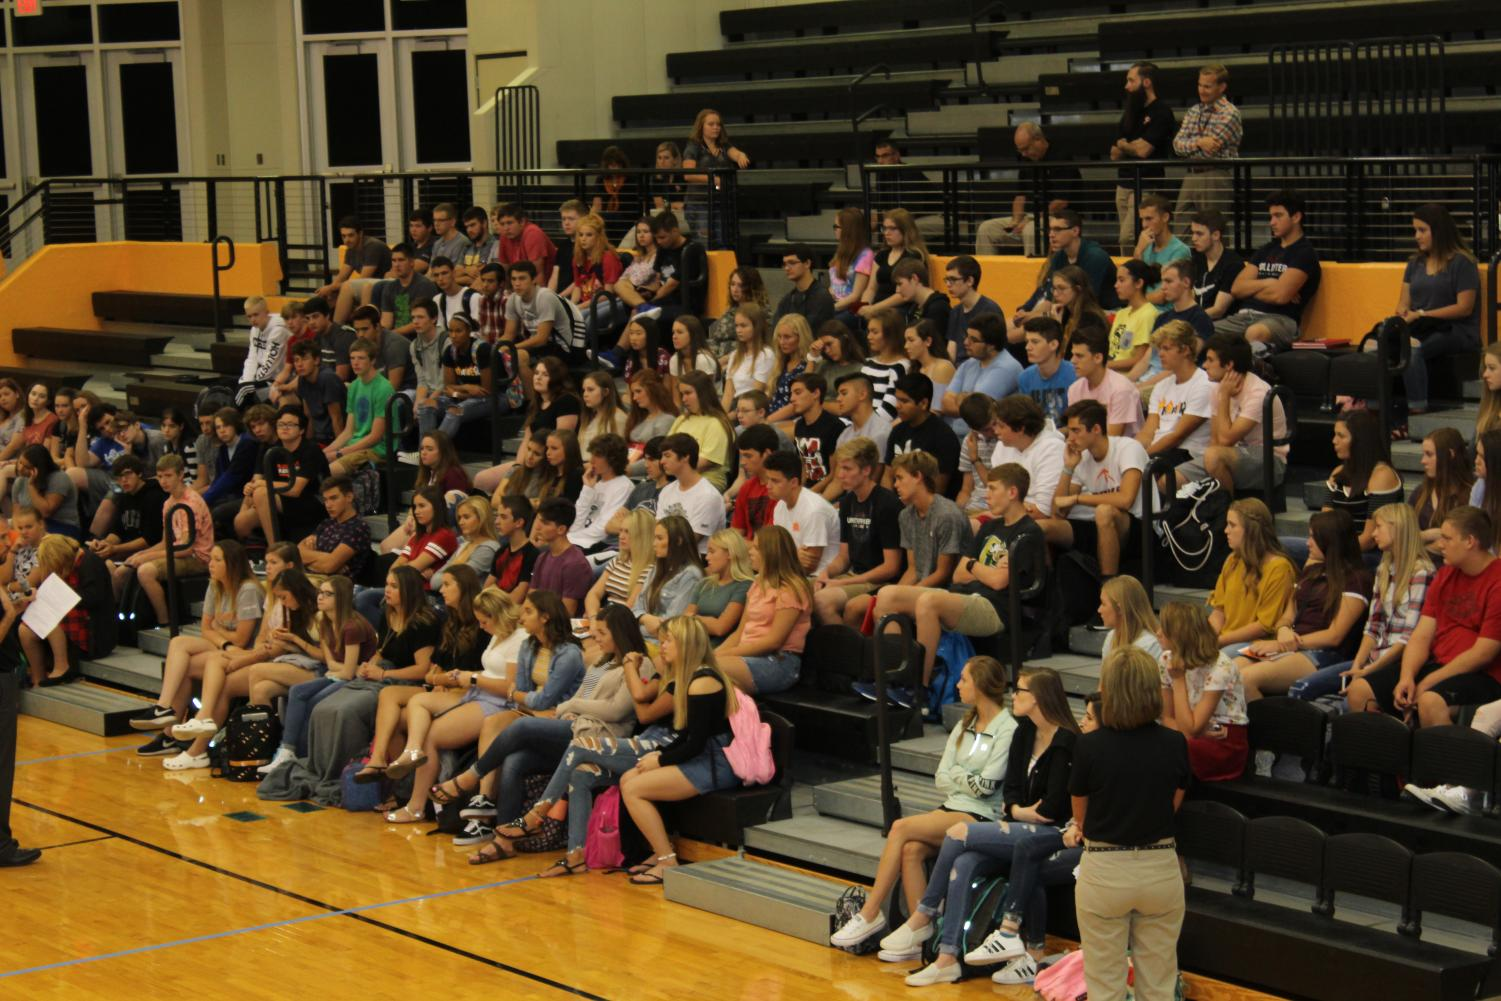 Junior class gathers for orientation on the first day of the 2018-19 school year. Principal, Donna Zerr and assistant principal, Ryan Muhlig refresh the rules and expectations of the high school.